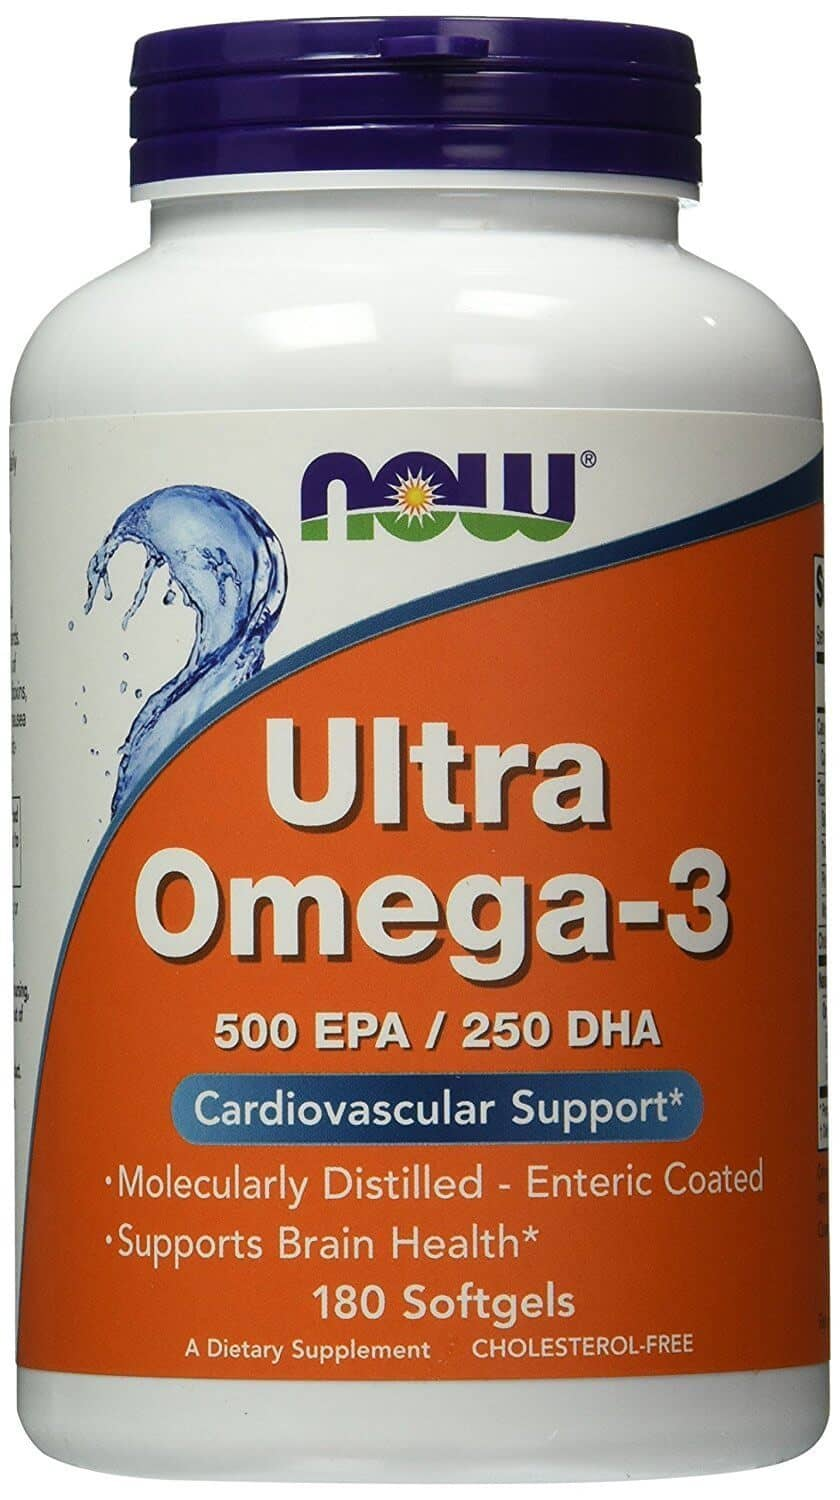 Omega 3 Essential Fatty Acids